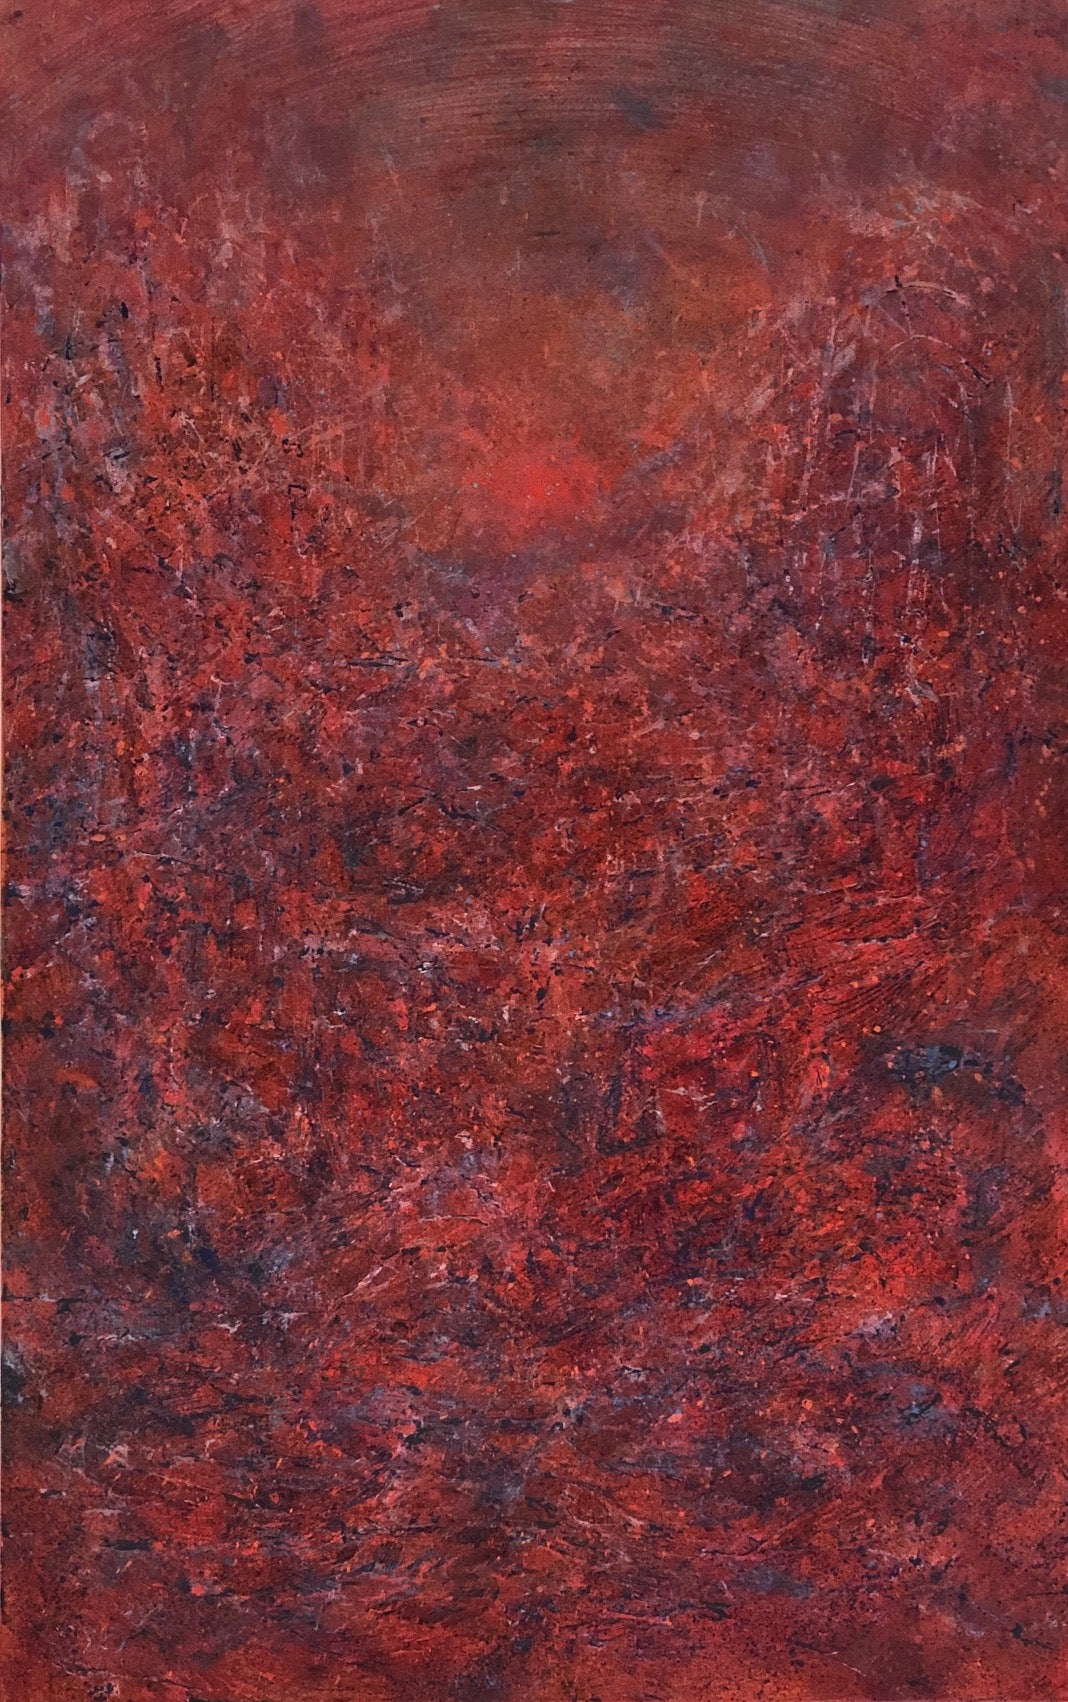 """Untitled - Red, from the Storm Series"" Red textured painting with distant sun"